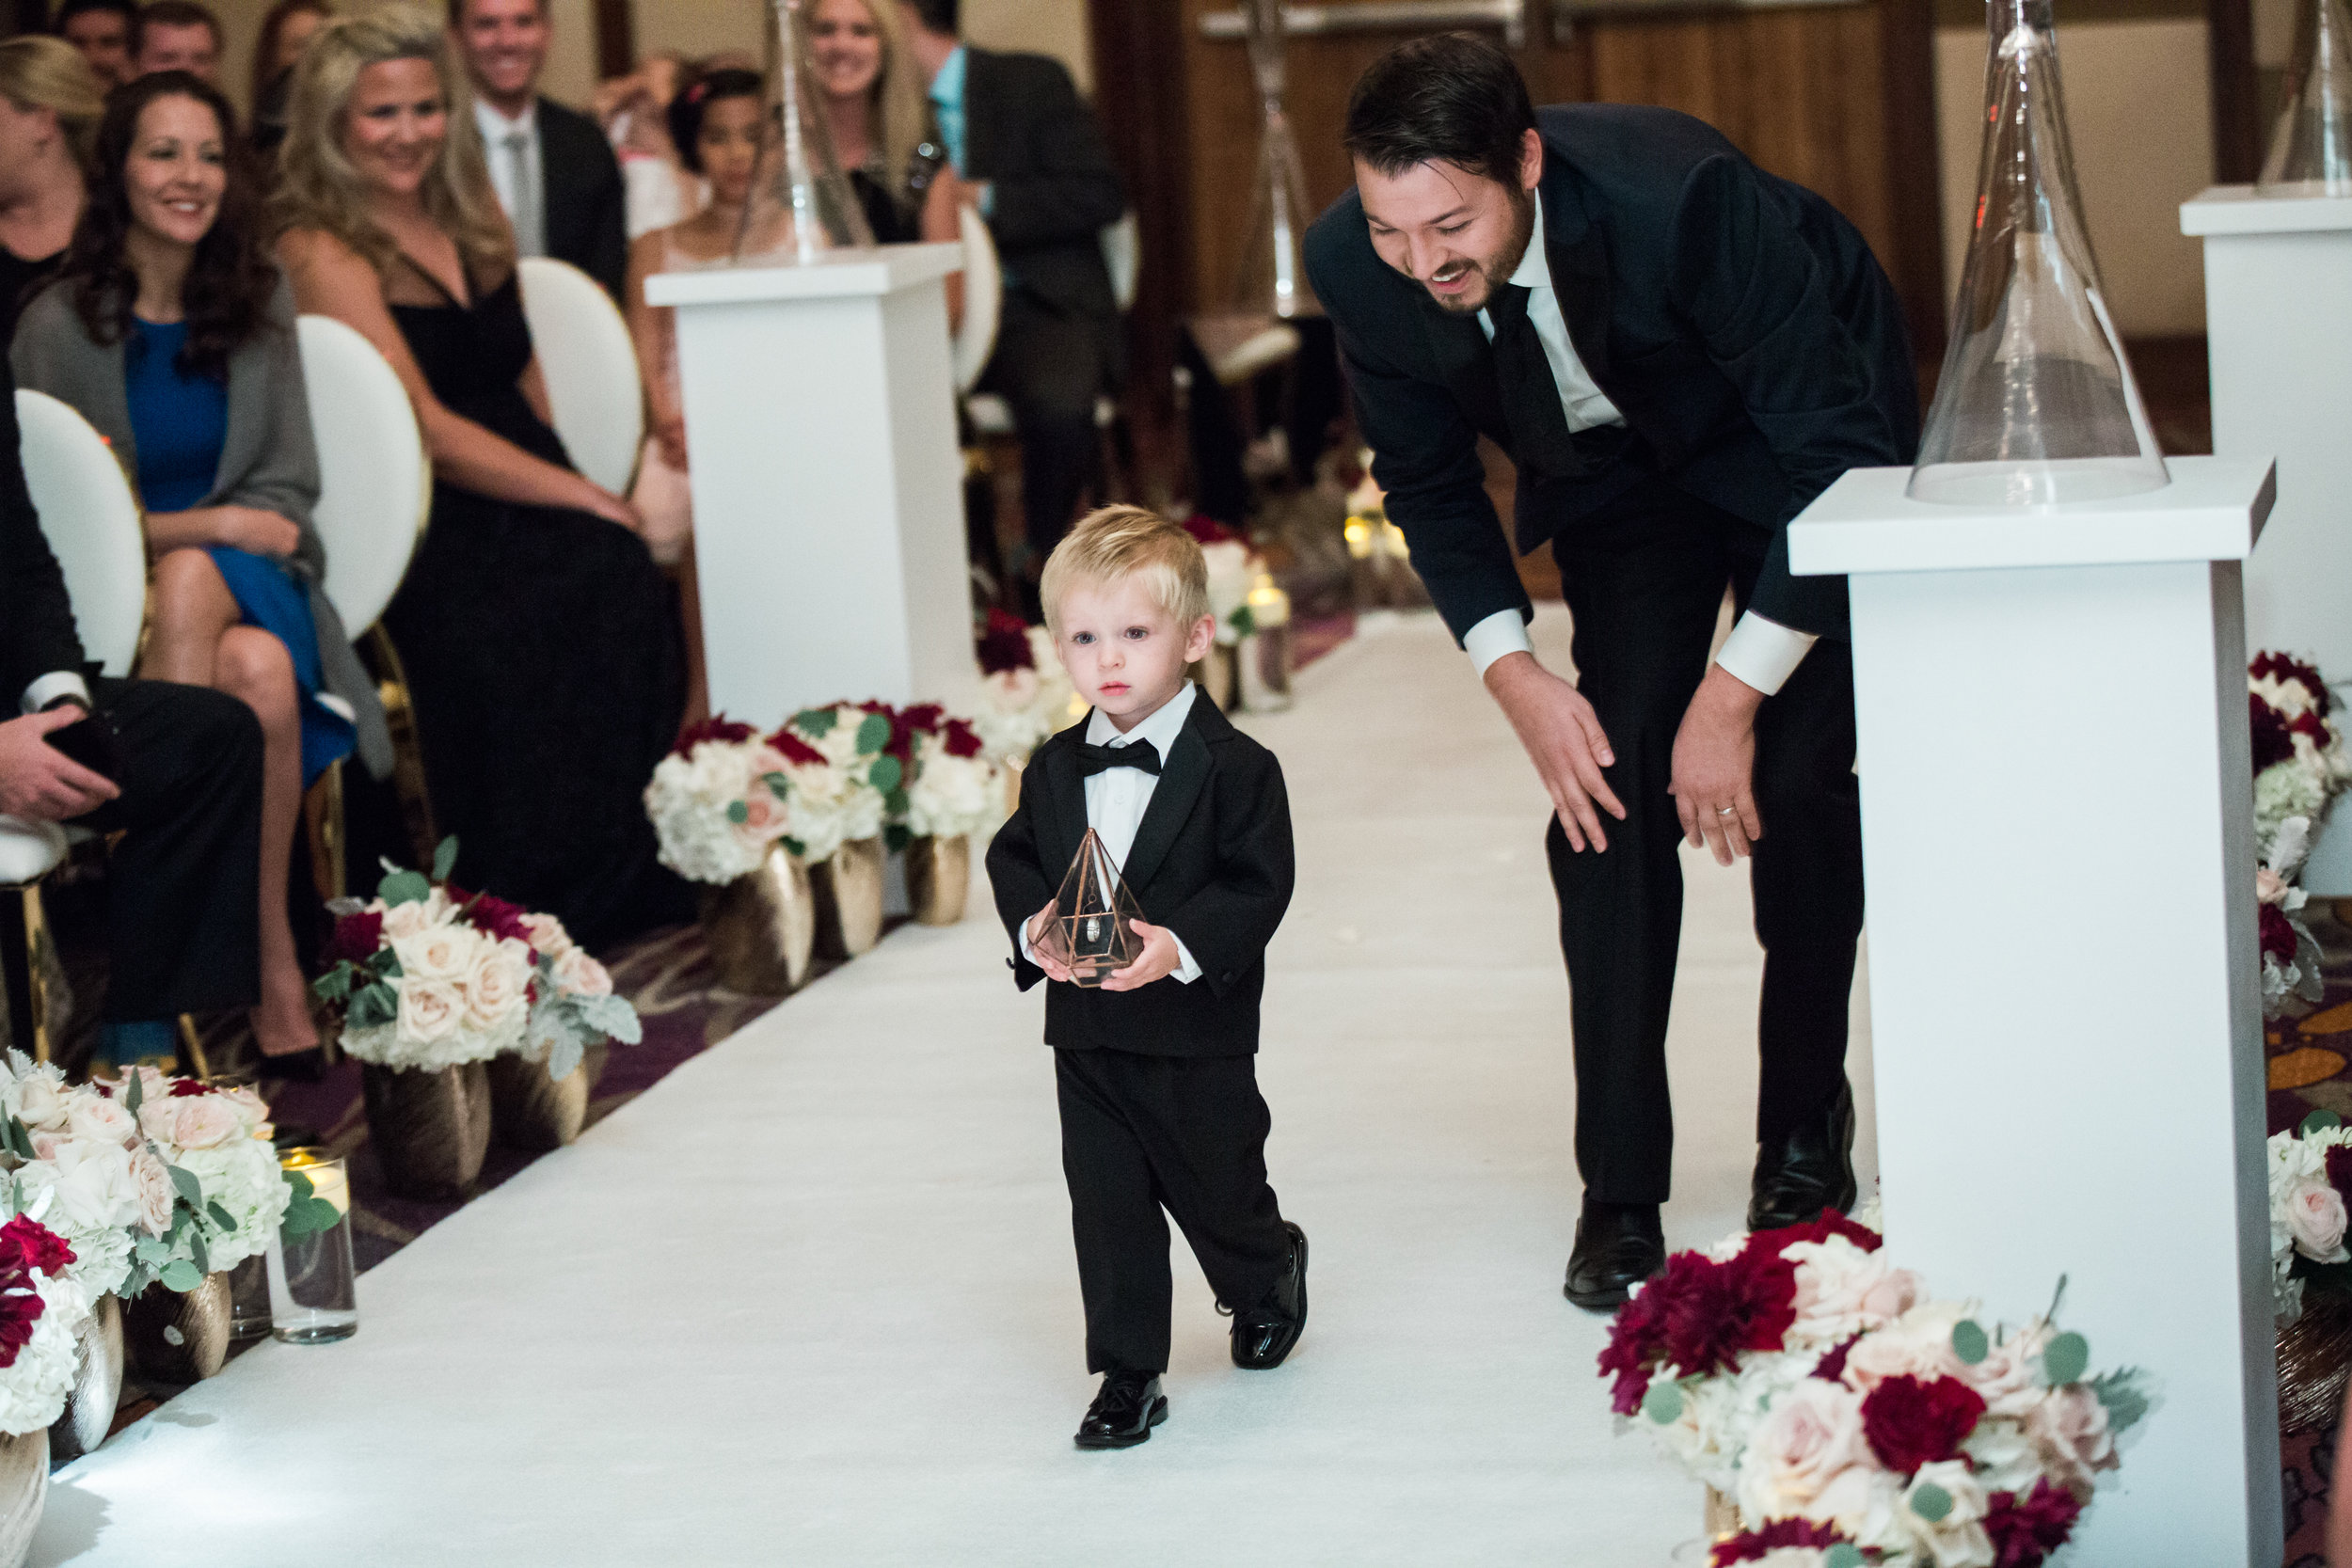 Ring bearer in gold and glass.Luxury wedding at the Mandarin Oriental with a color scheme of white, blush, and pops of wine red produced by Las Vegas Wedding Planner Andrea Eppolito with photos by Stephen Salazar Photography.